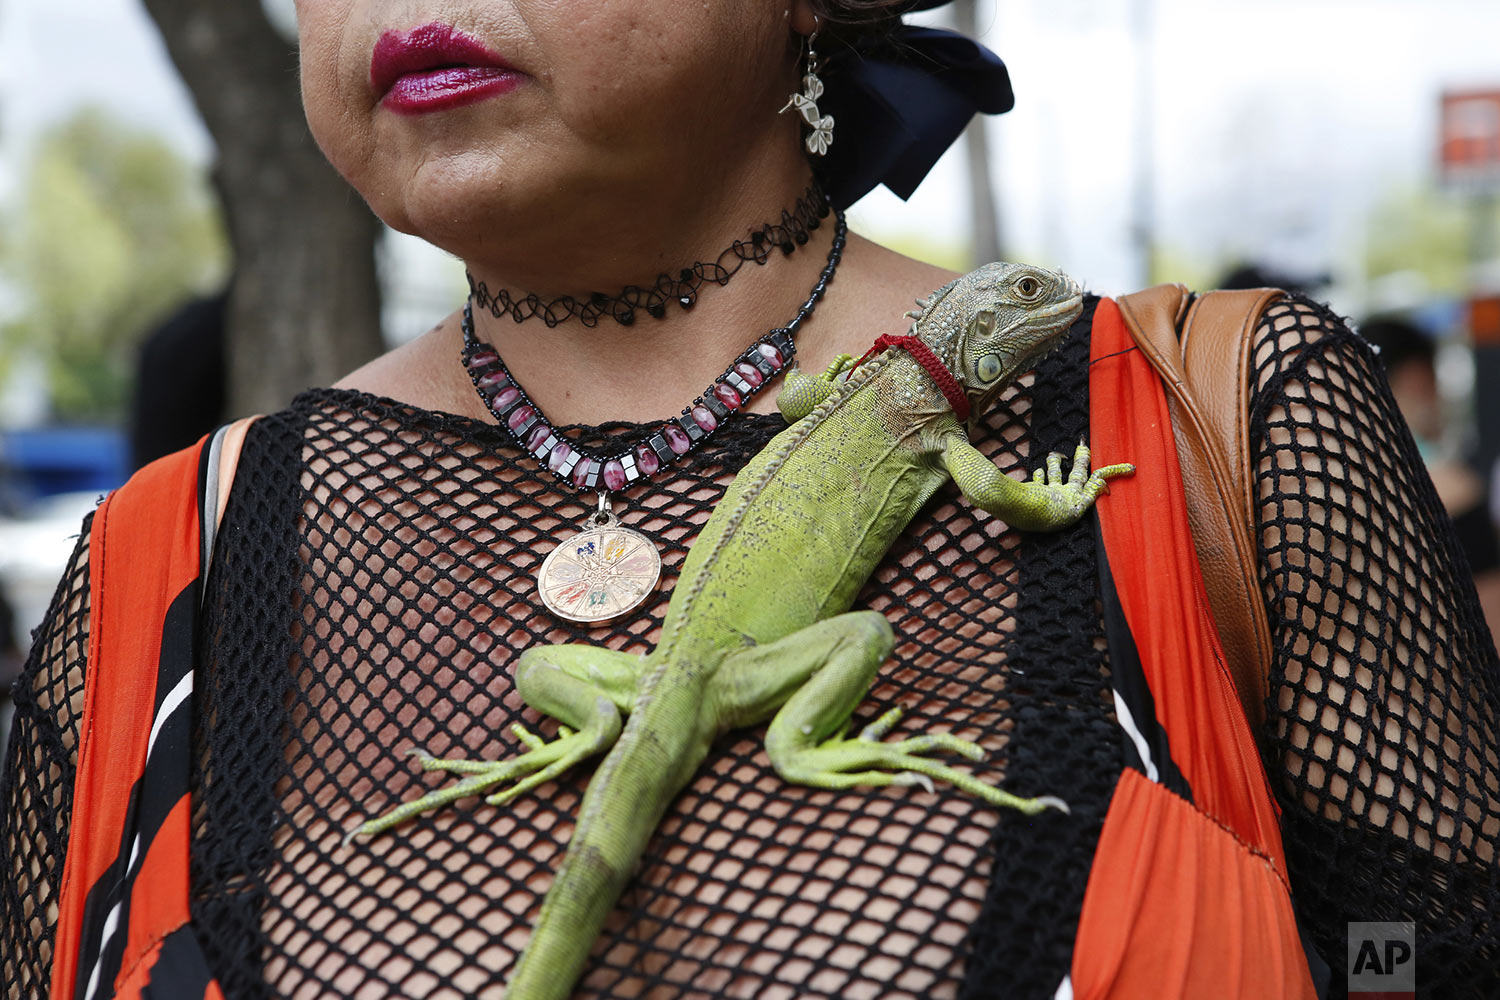 """Karla Esperanza, a transgender sex worker, poses for a photo with her iguana named """"Rectilio"""" on International Sex Workers Day in Mexico City, Mexico, Sunday, June 2, 2019. On Friday, Mexico City's government voted in favor of a bill that no longer allows sex workers or their clients to be arrested or fined after a complaint. (AP Photo/Ginnette Riquelme)"""